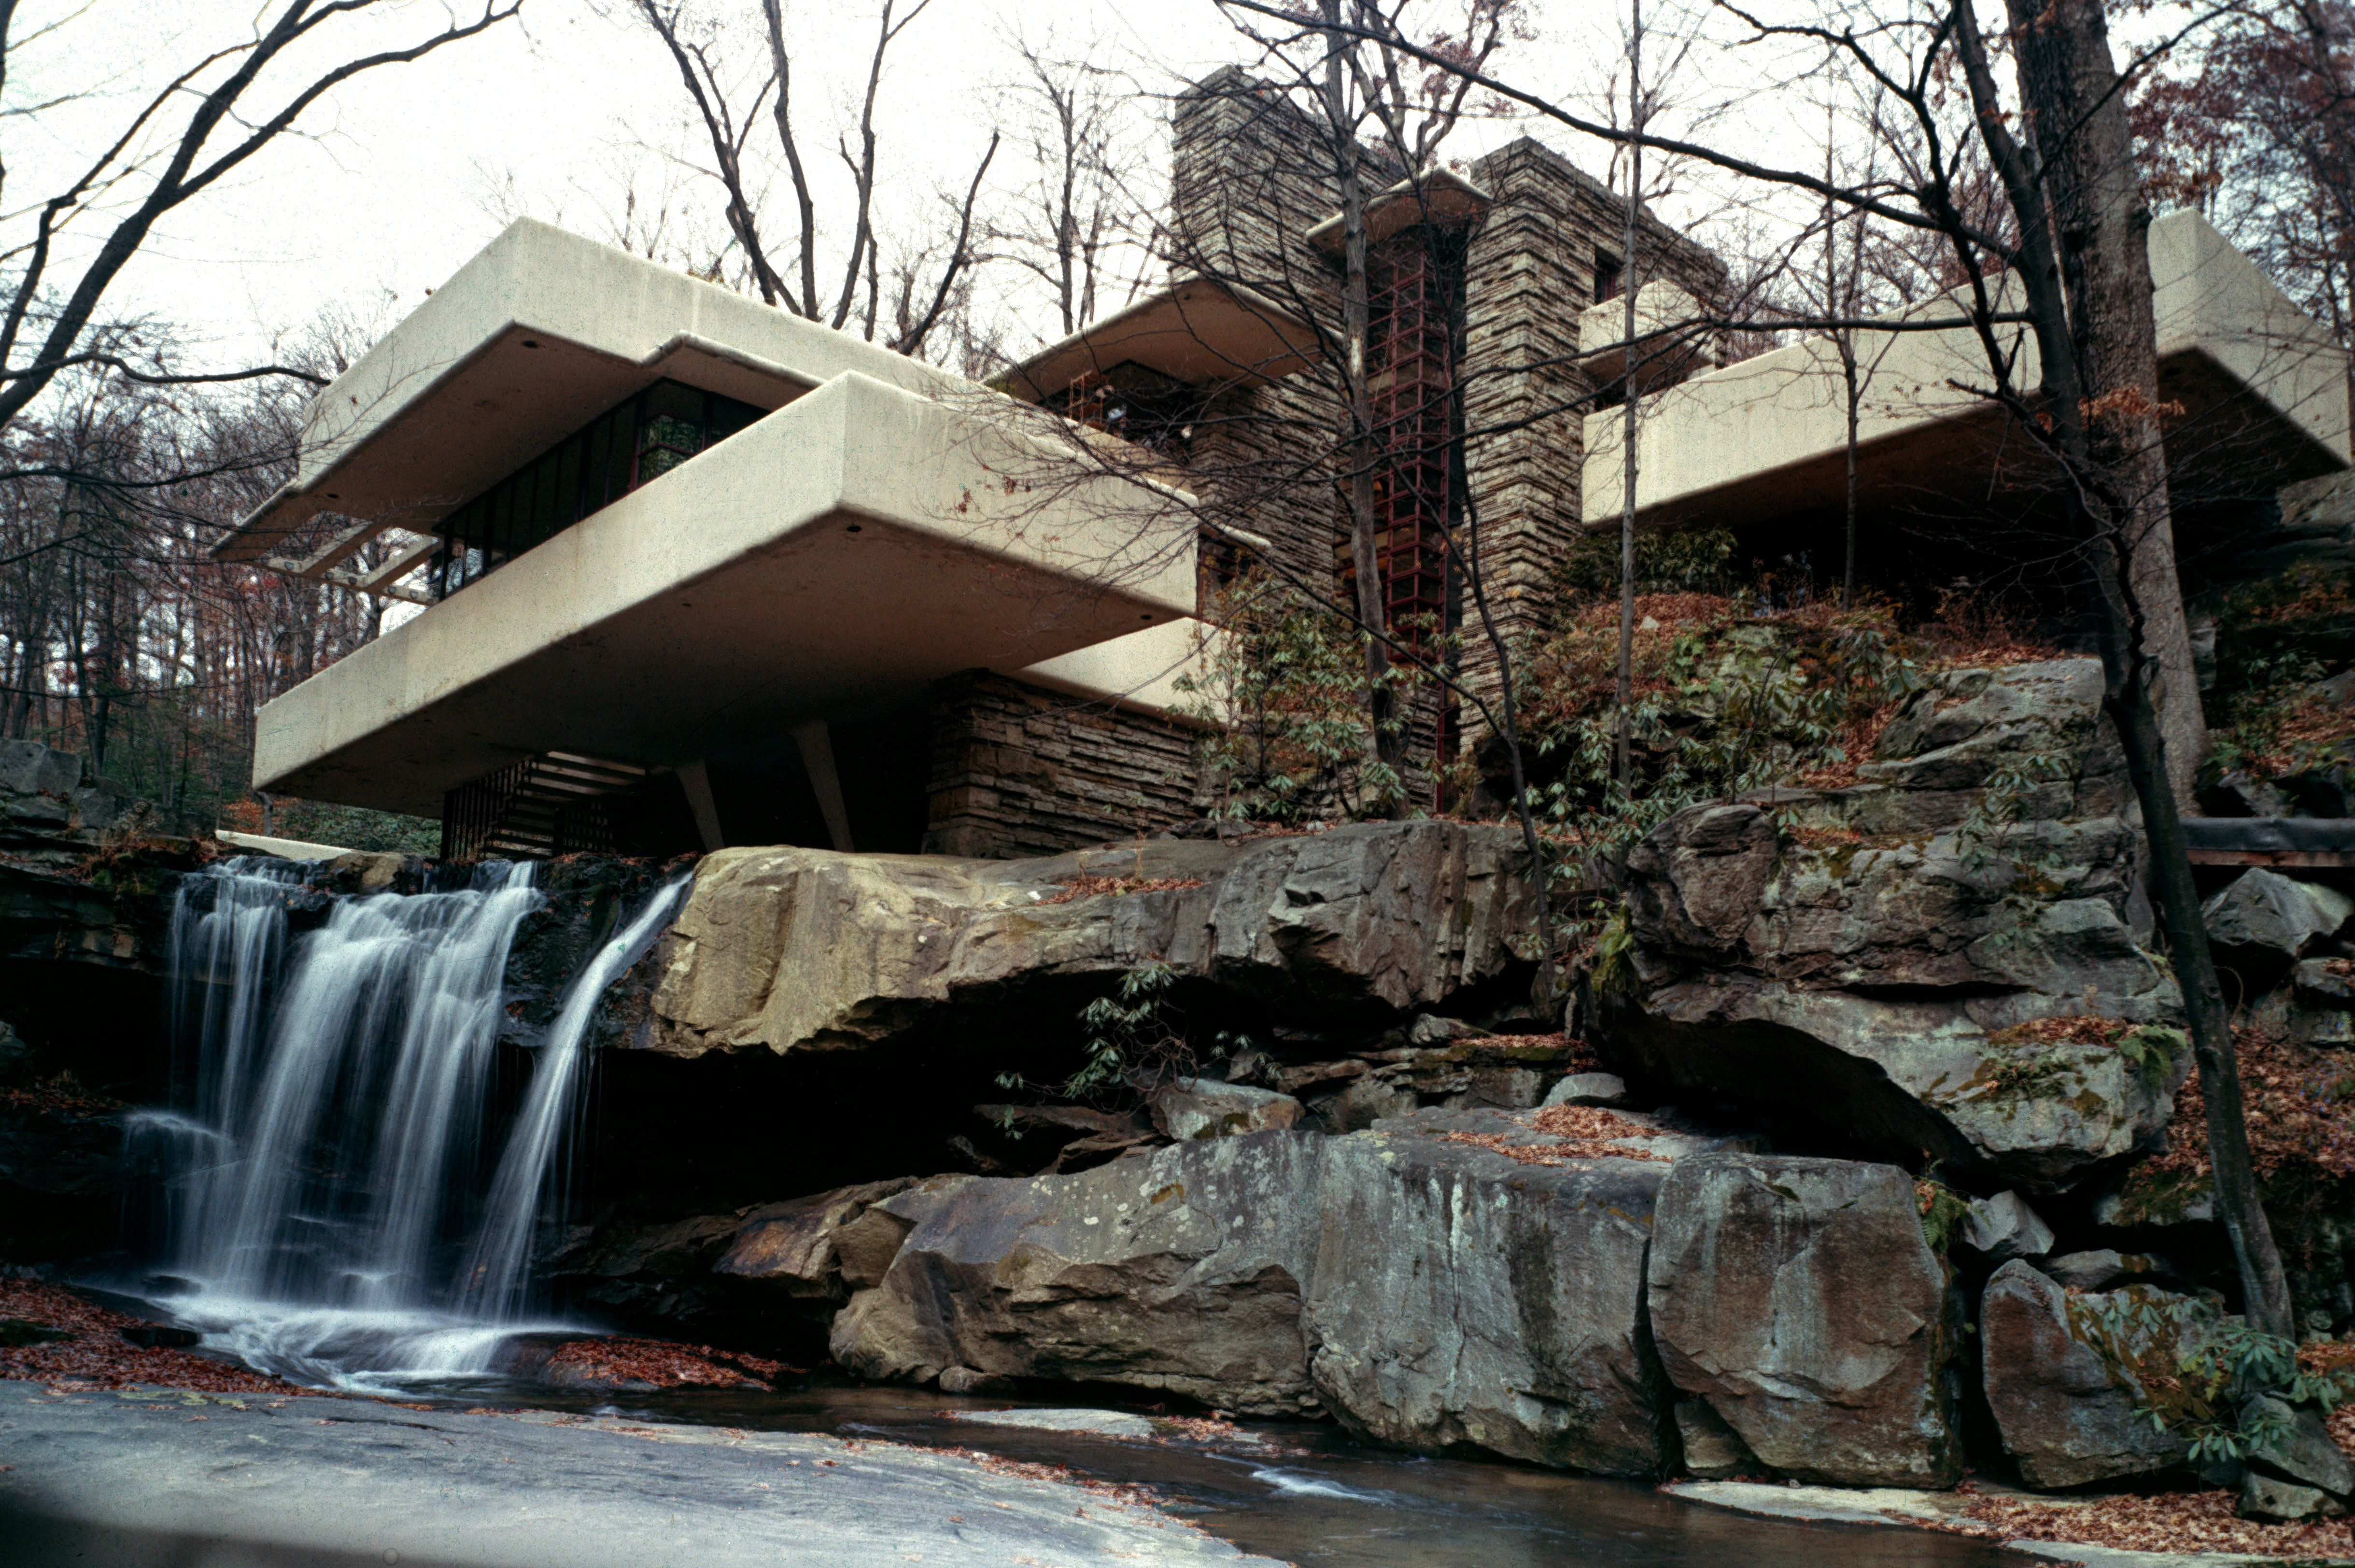 modern house with many cantilevered levels built into the side of a hill near a creek, with water running underneath the house into the water below